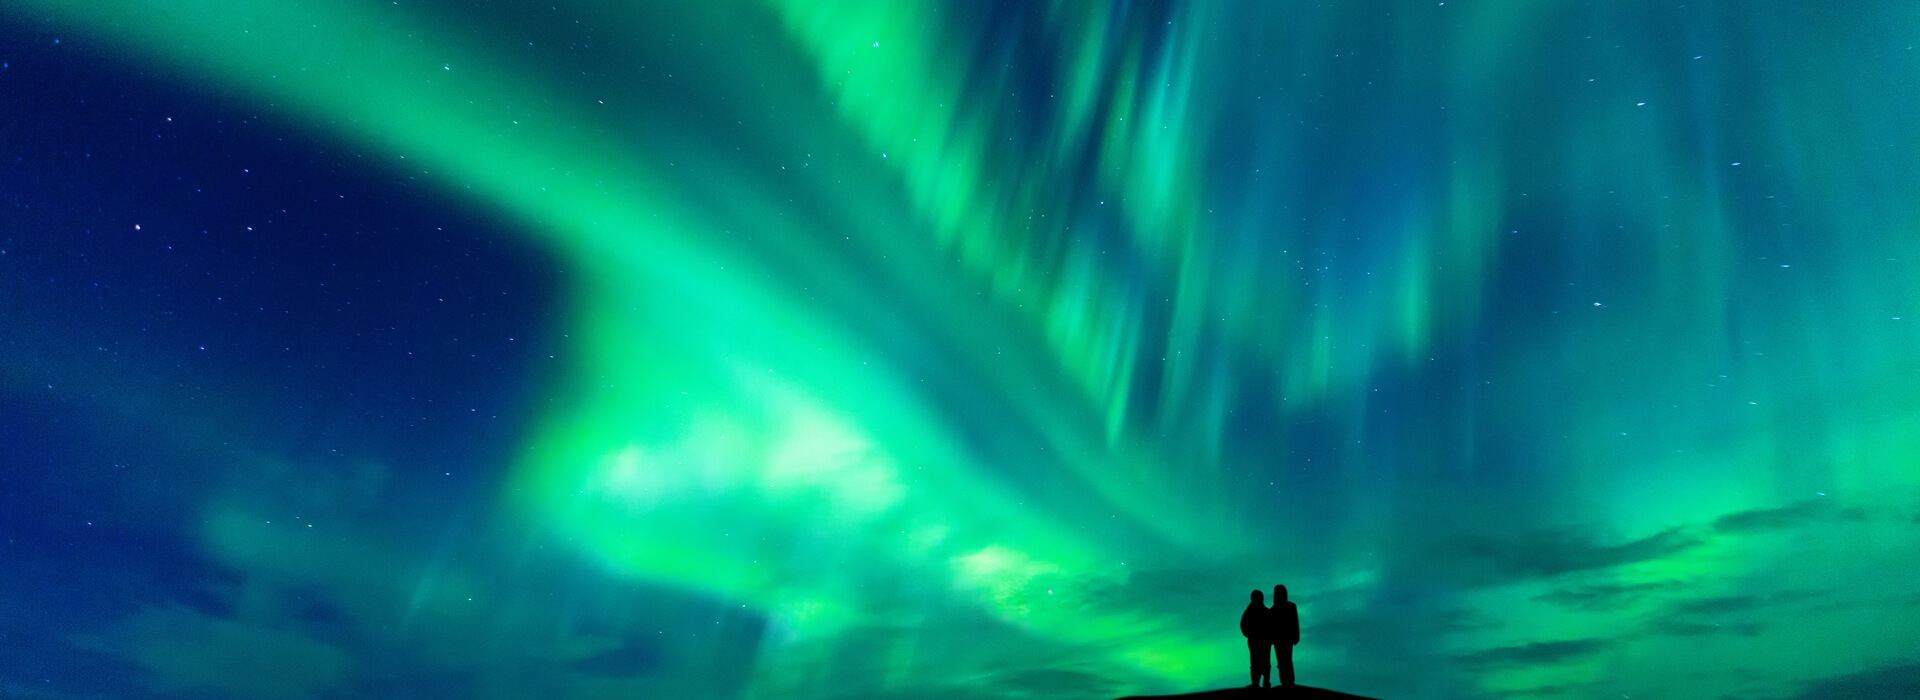 Aurora Borealis with silhouette of a romantic couple, Iceland